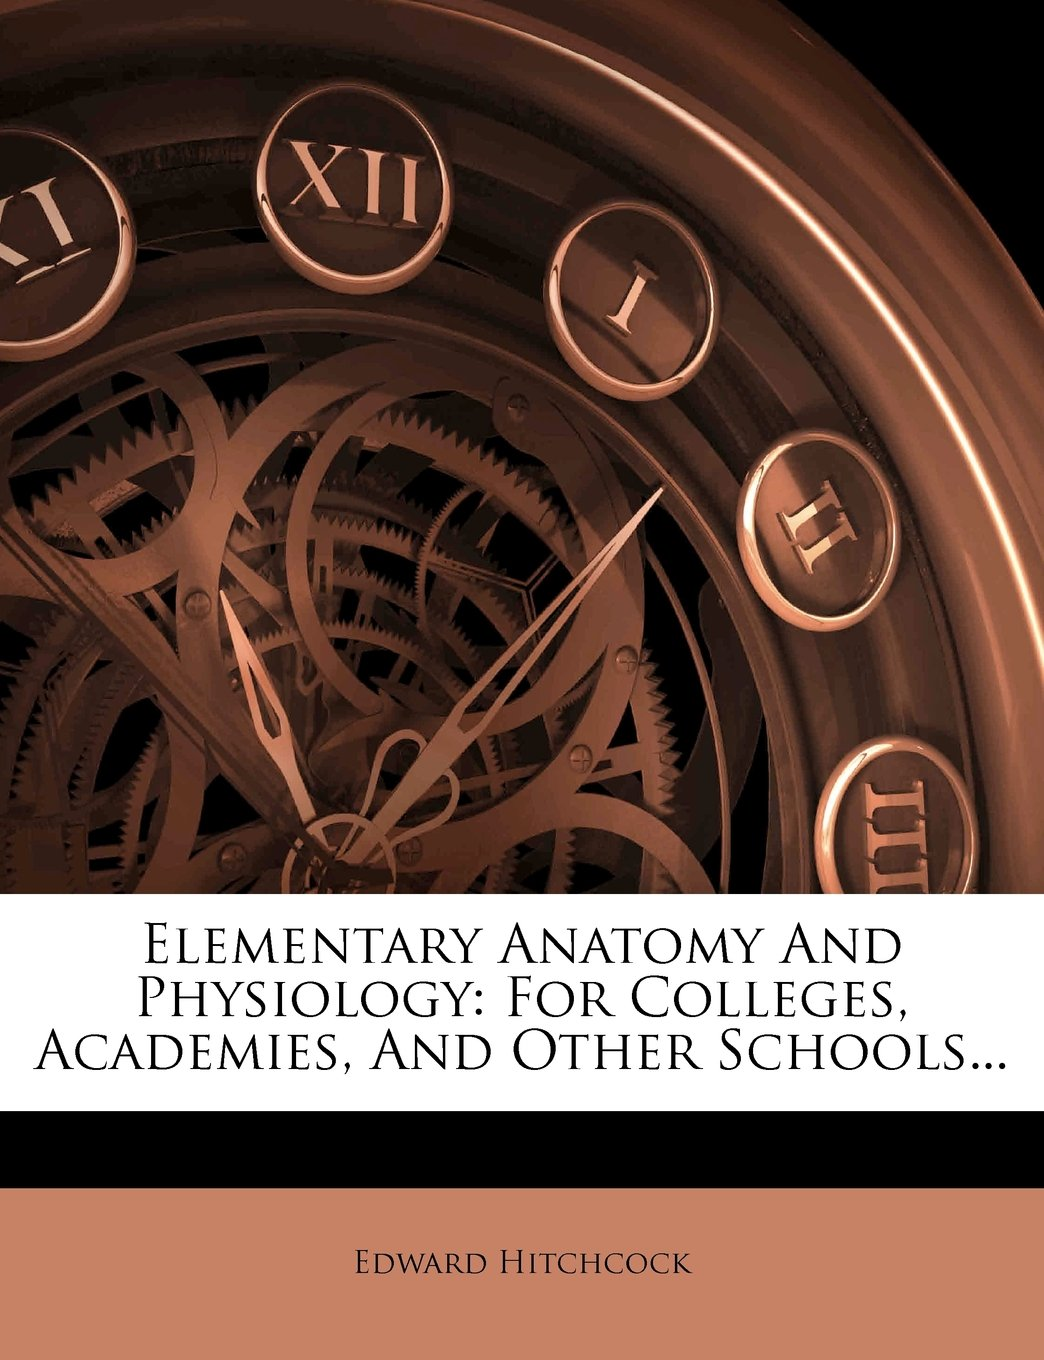 Download Elementary Anatomy And Physiology: For Colleges, Academies, And Other Schools... PDF